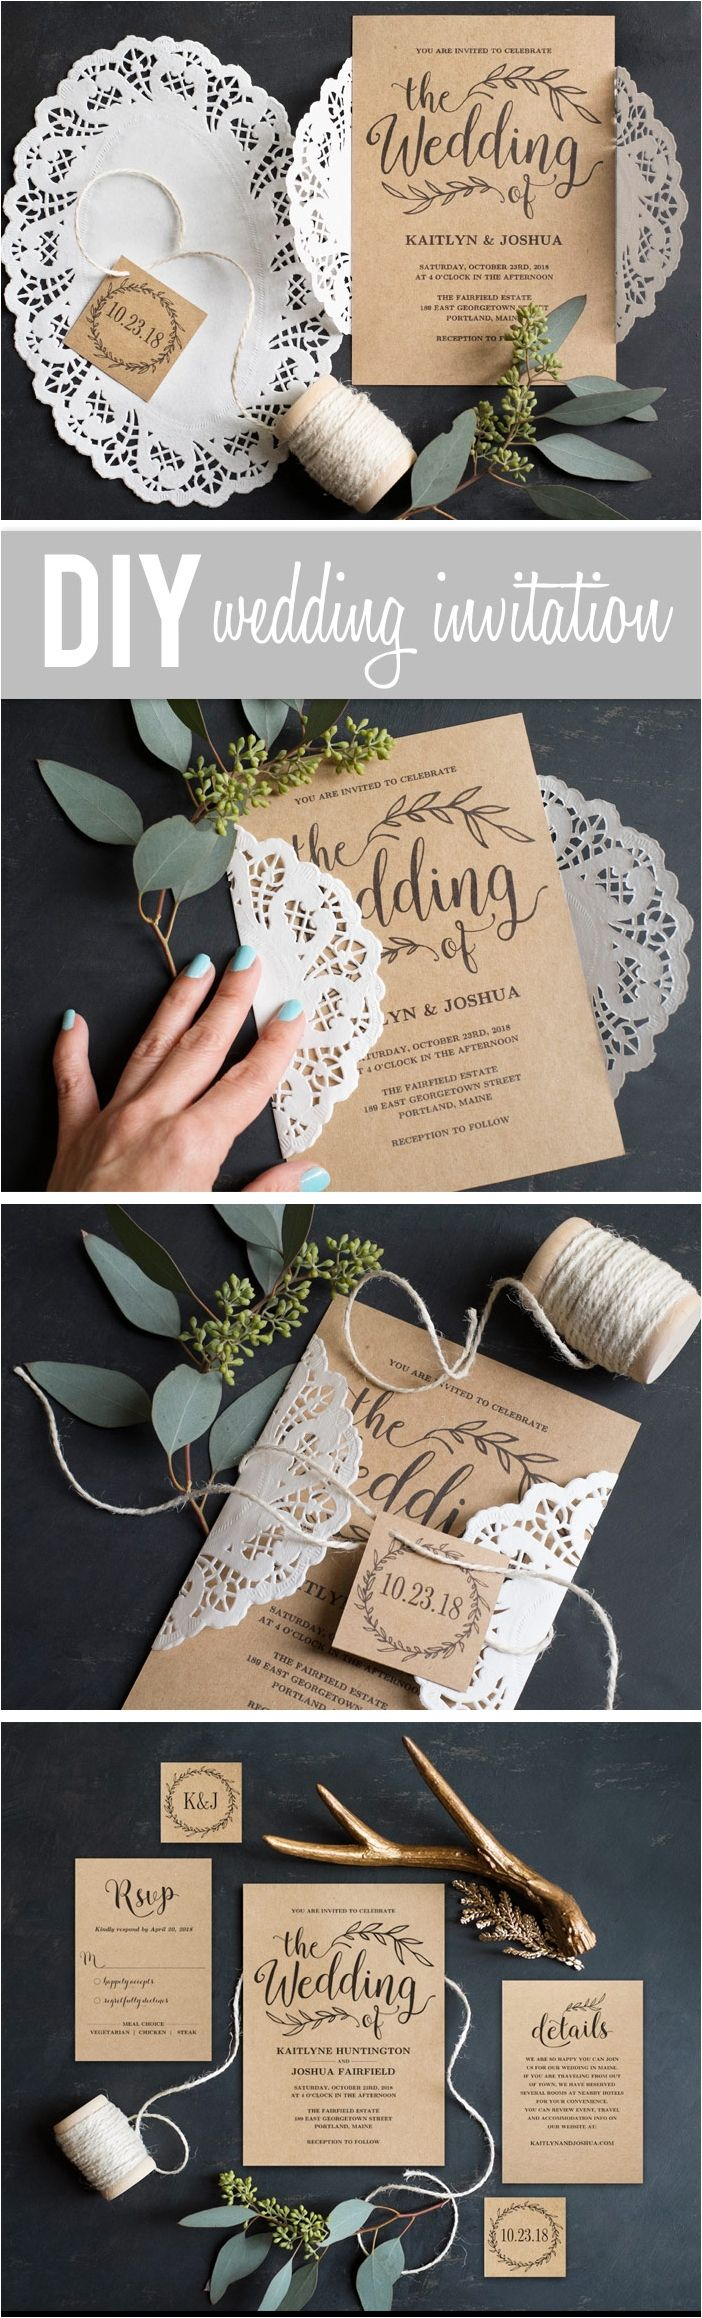 sample of wedding invitation letter%0A Rustic Wedding Invitation Inspiration For Your Rustic Wedding